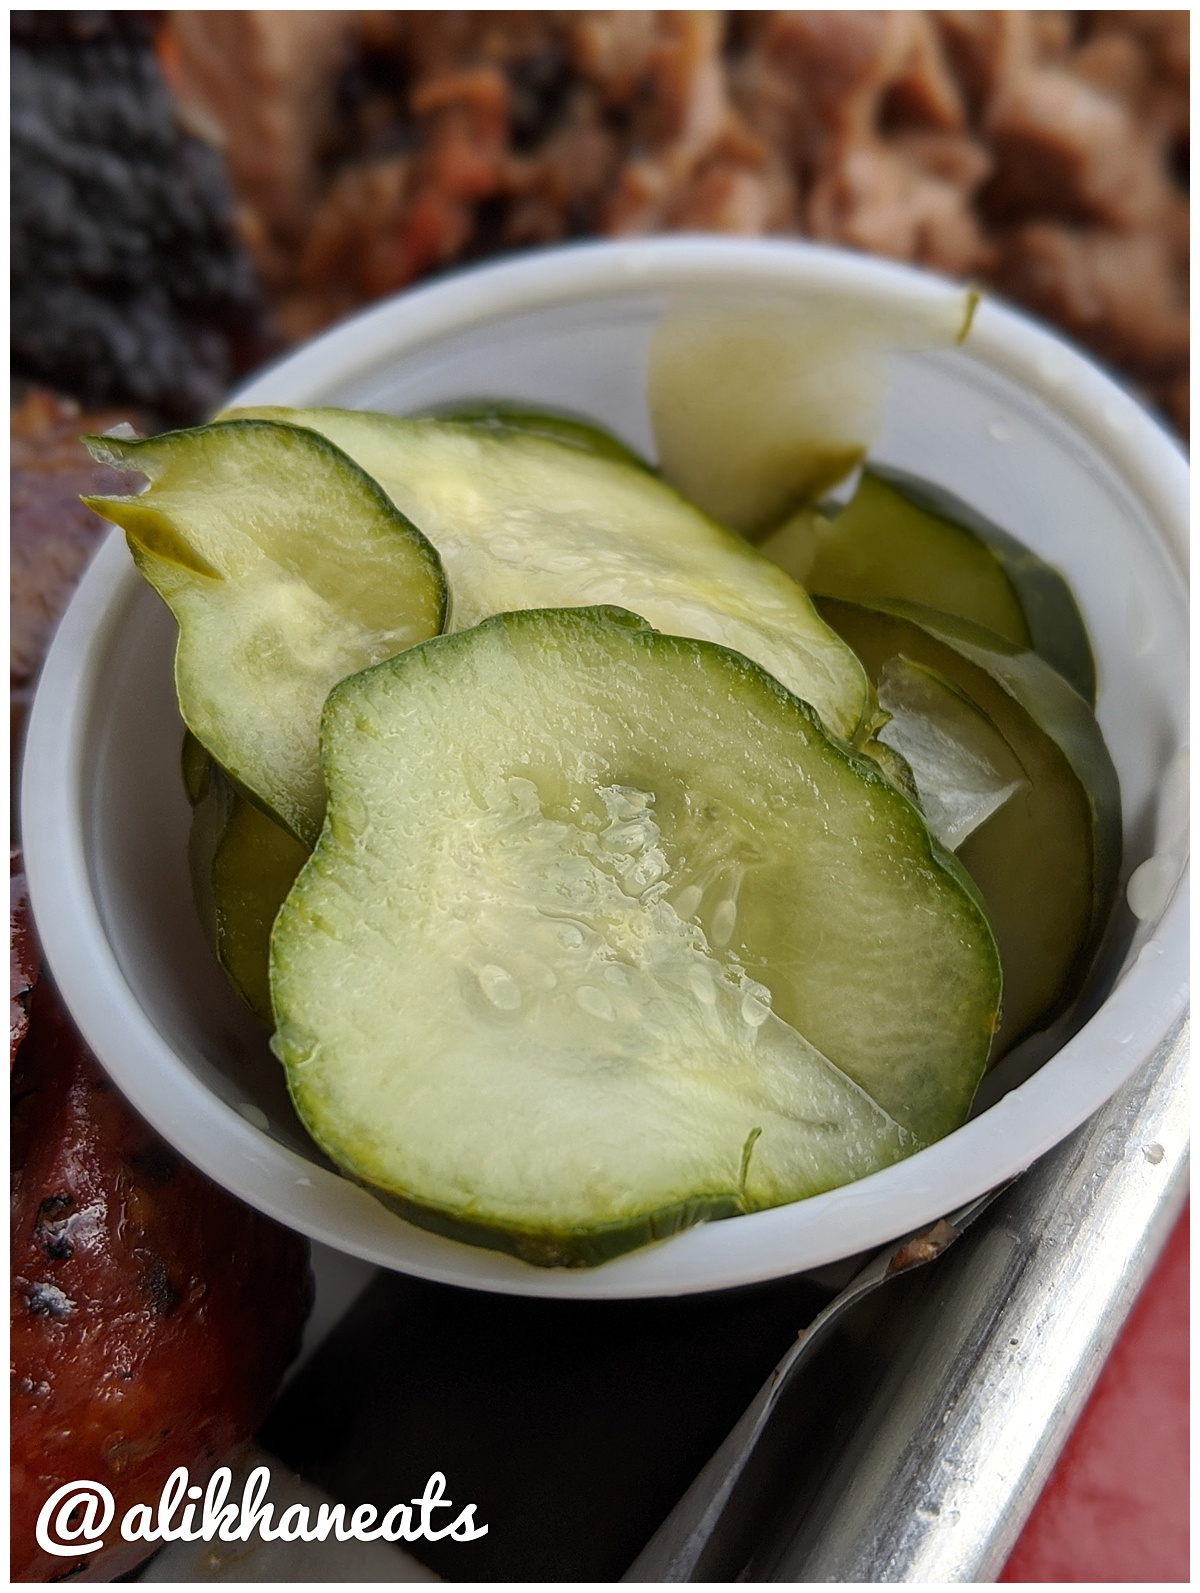 Brotherton's pickles